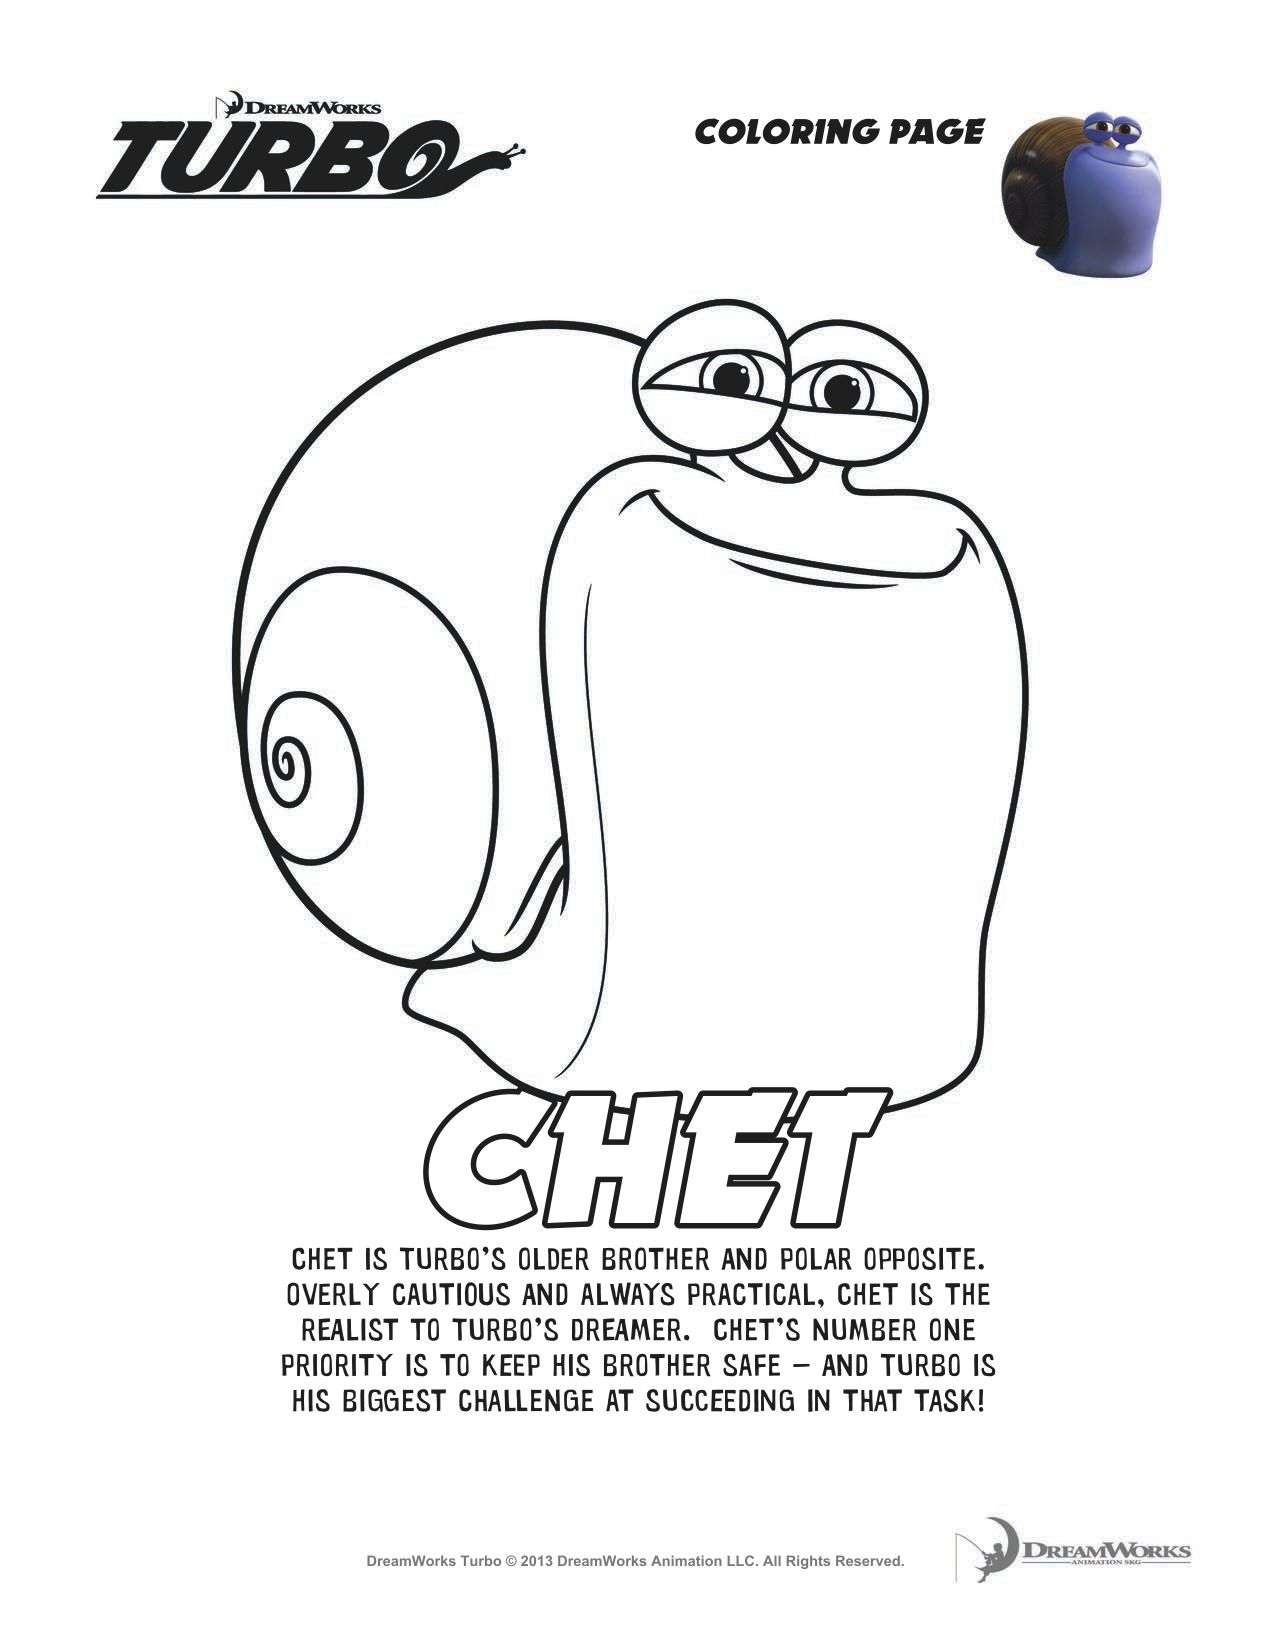 Turbo Chet Coloring Page Coloring Pages Niece Nephew Boy